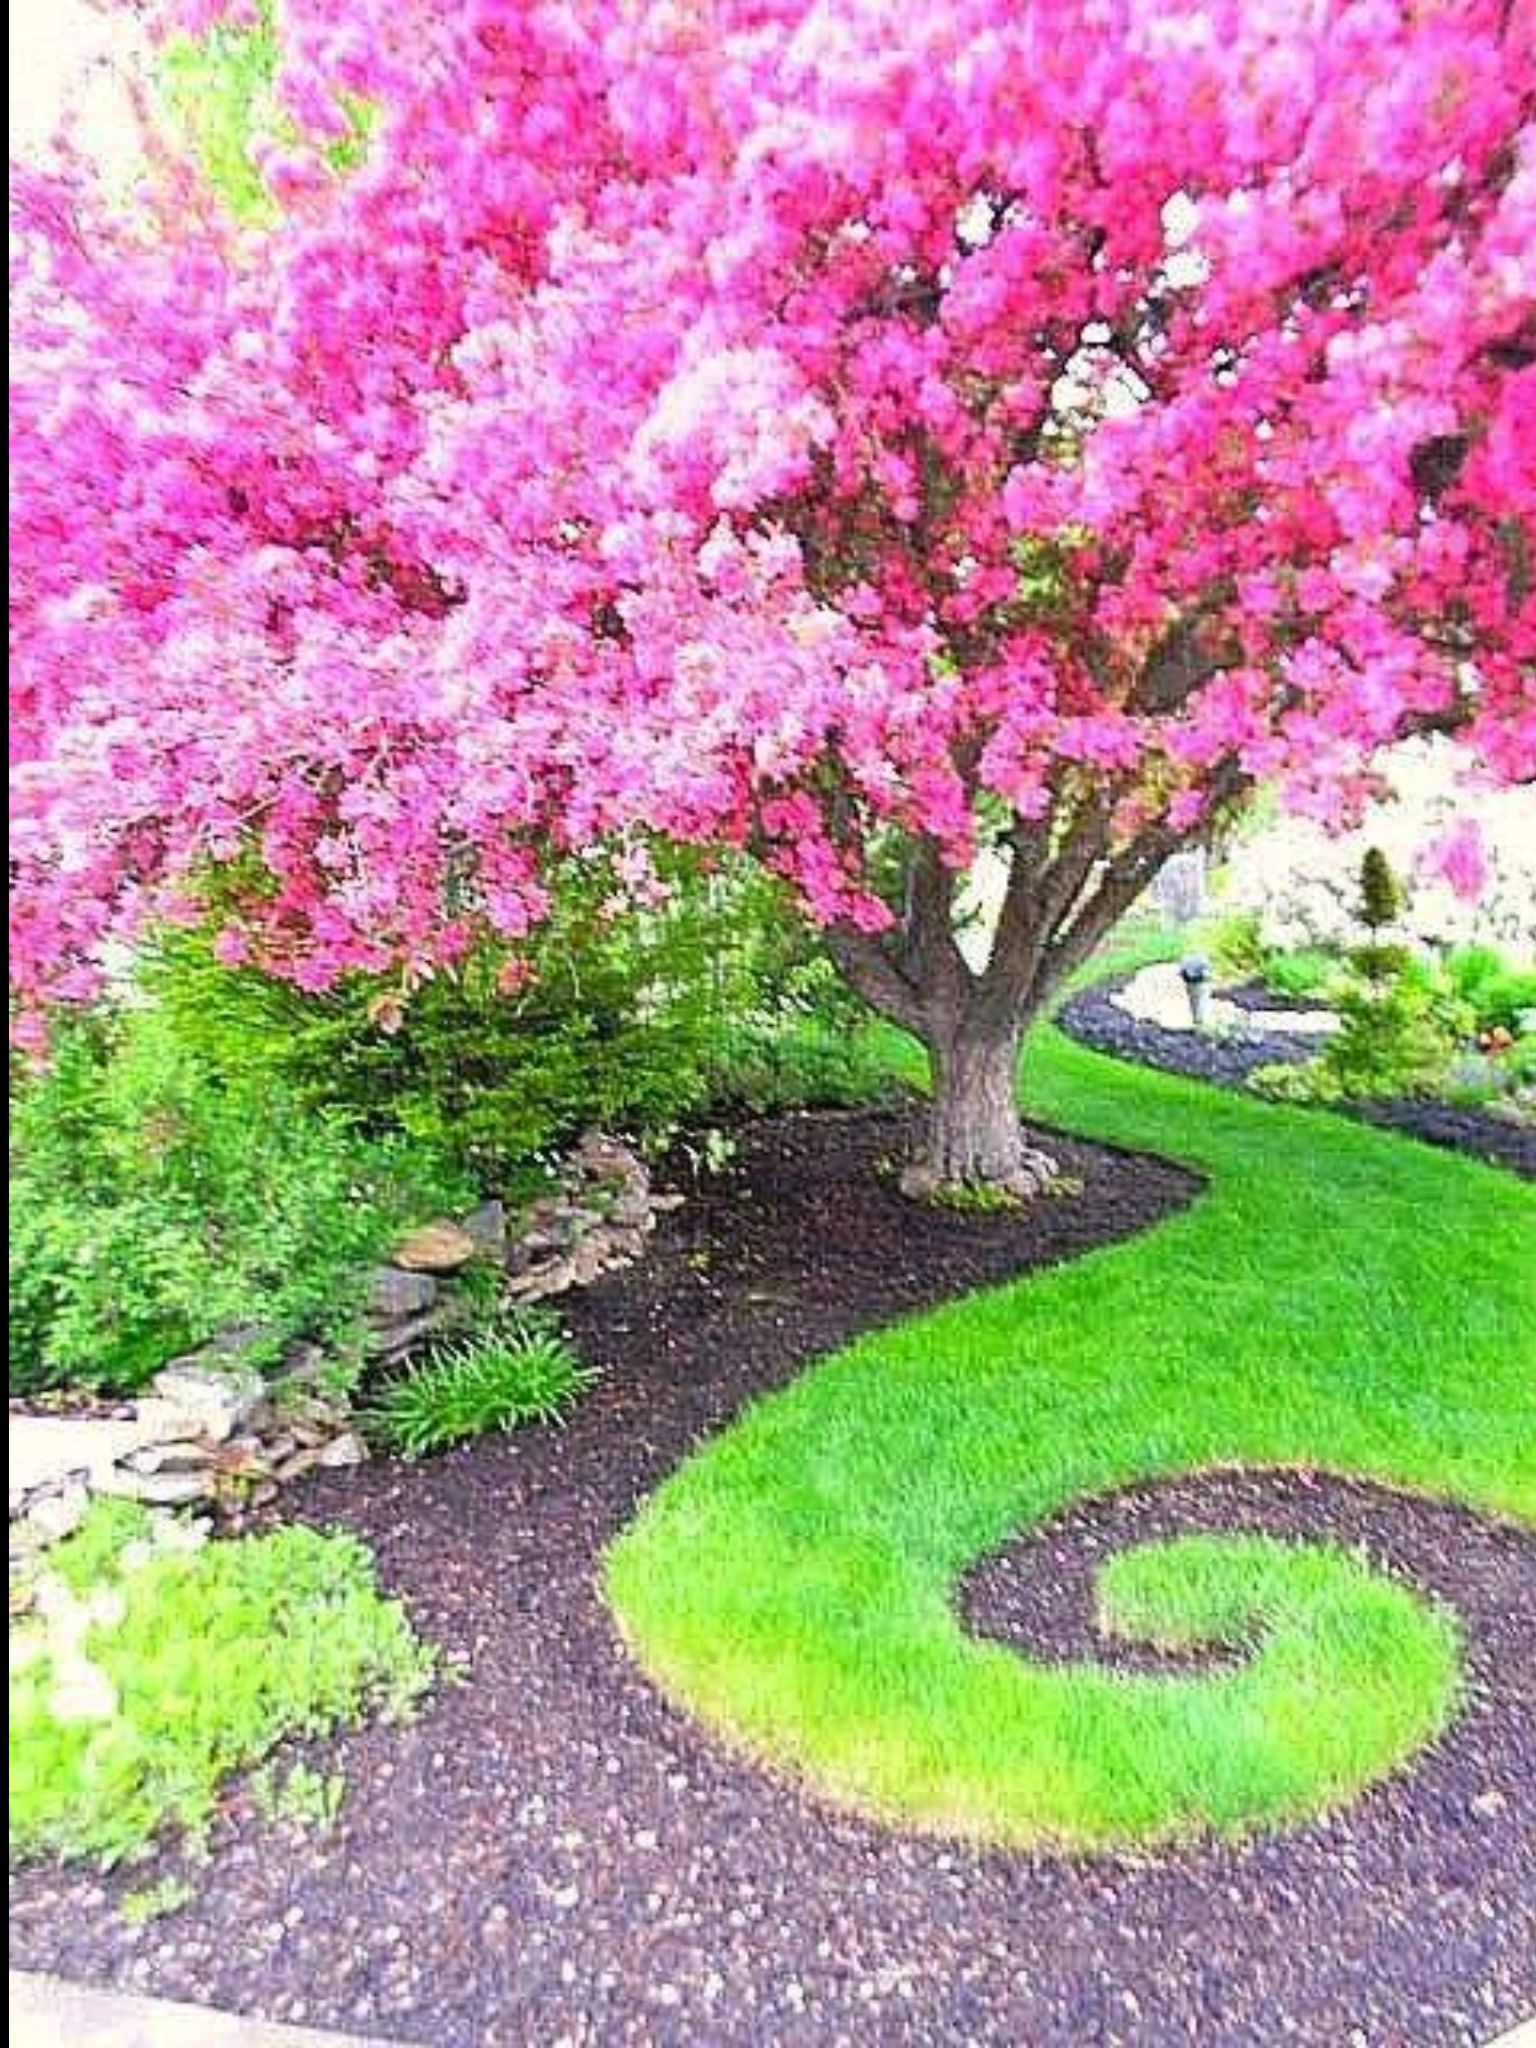 Pin by Jerry Diaz on House Stuff | Pinterest | Landscaping, Gardens ...